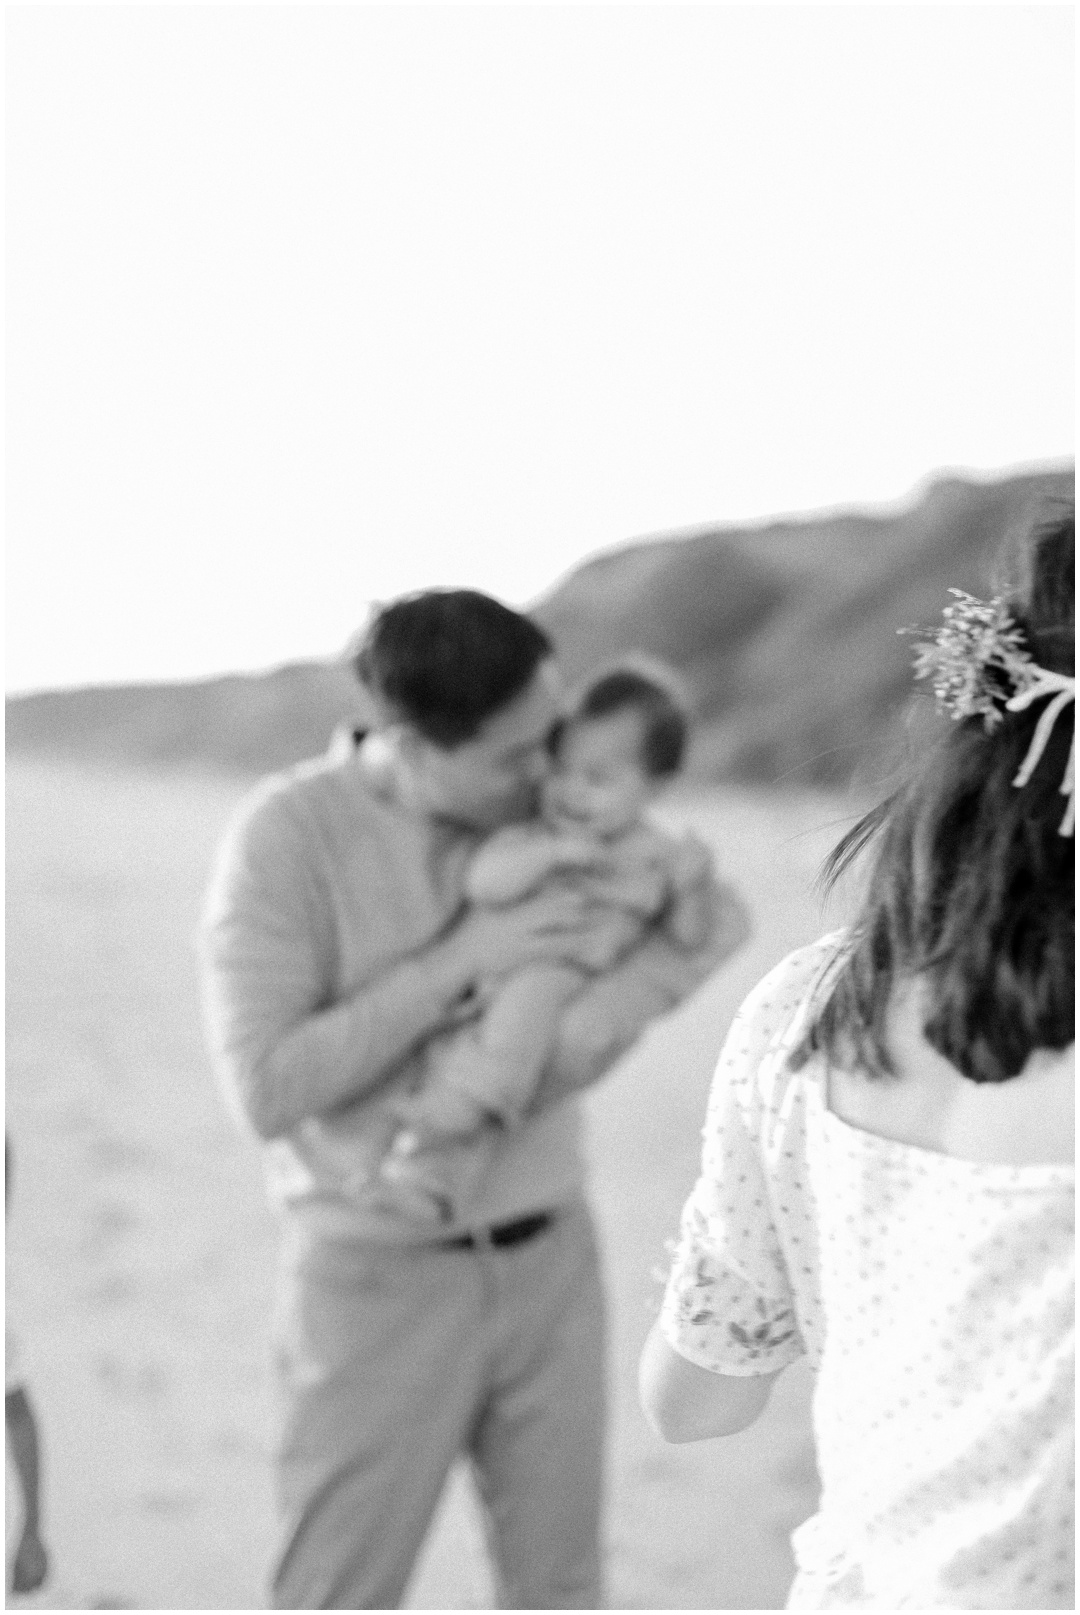 Newport_Beach_Newborn_Light_Airy_Natural_Photographer_Newport_Beach_Photographer_Orange_County_Family_Photographer_Cori_Kleckner_Photography_Huntington_Beach_Photographer_Family_OC_Newborn_Jennifer_Tom_Maternity_Family_session__3422.jpg